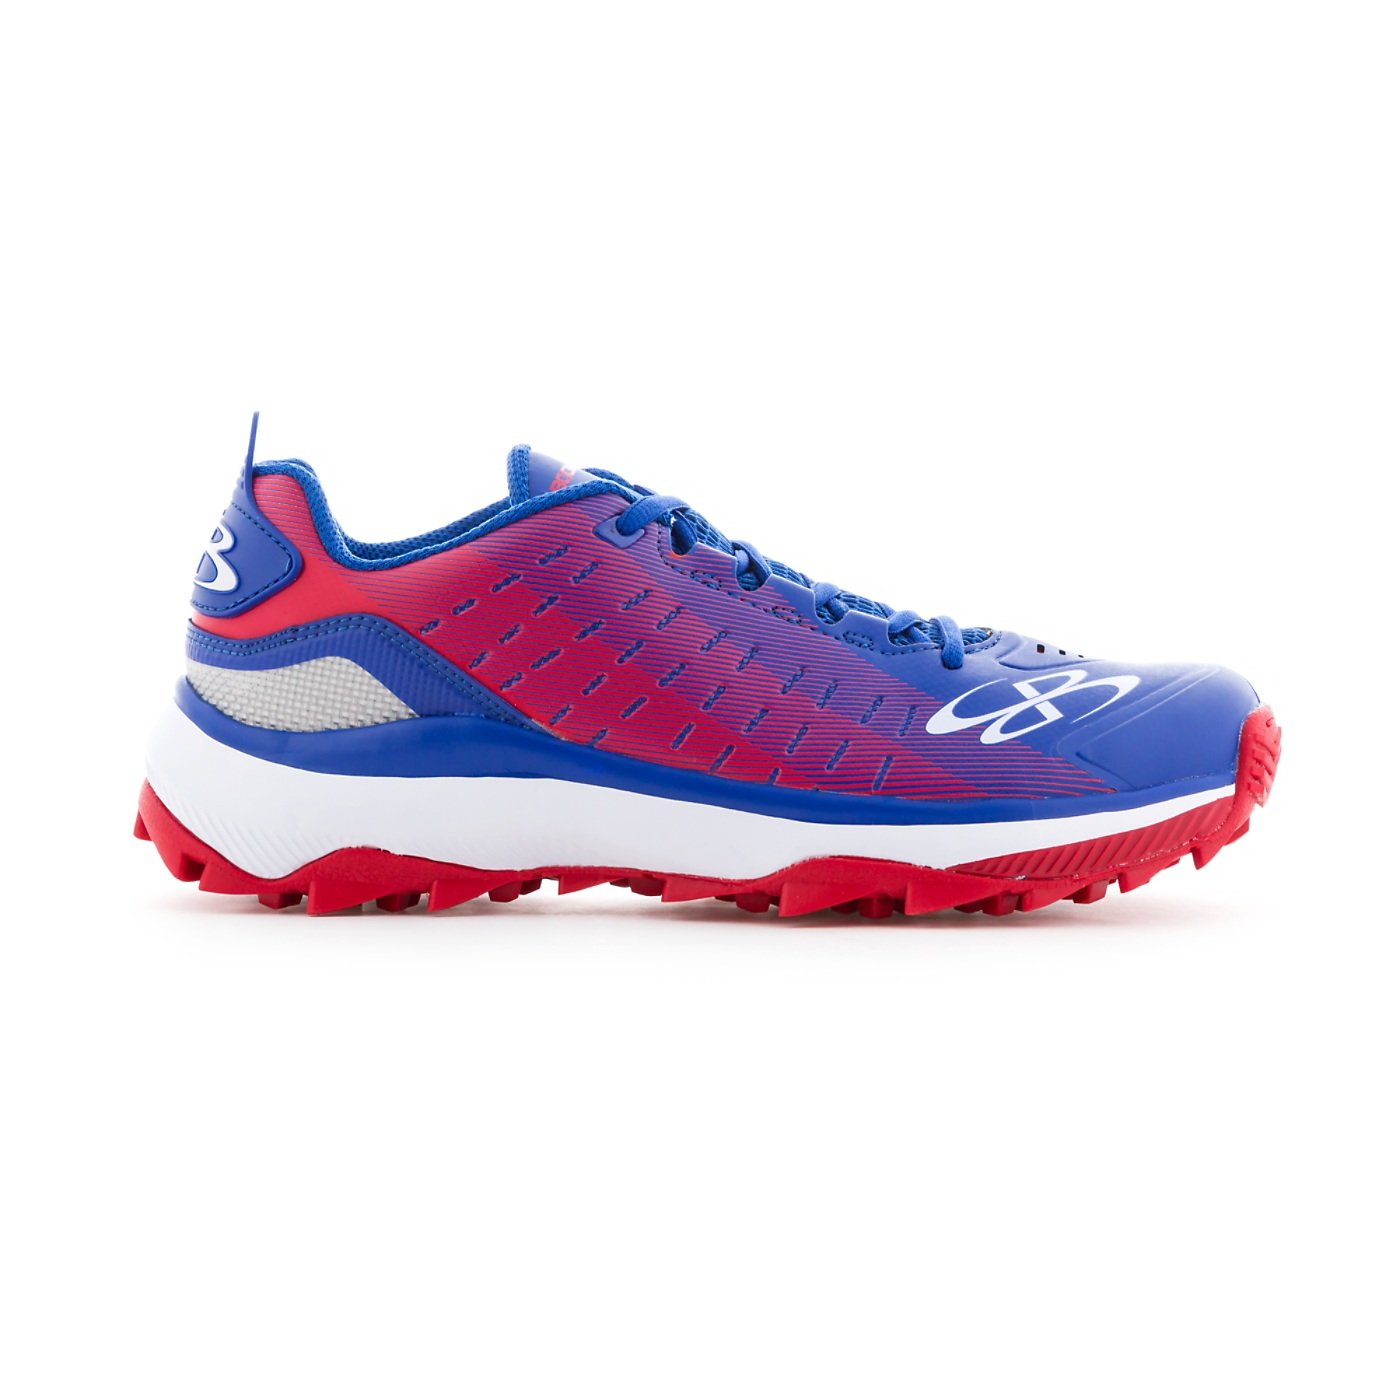 Boombah Men's Catalyst Turf Shoes - 14 Color Options - Multiple Sizes B079M1J6ZB 9|Royal/Red